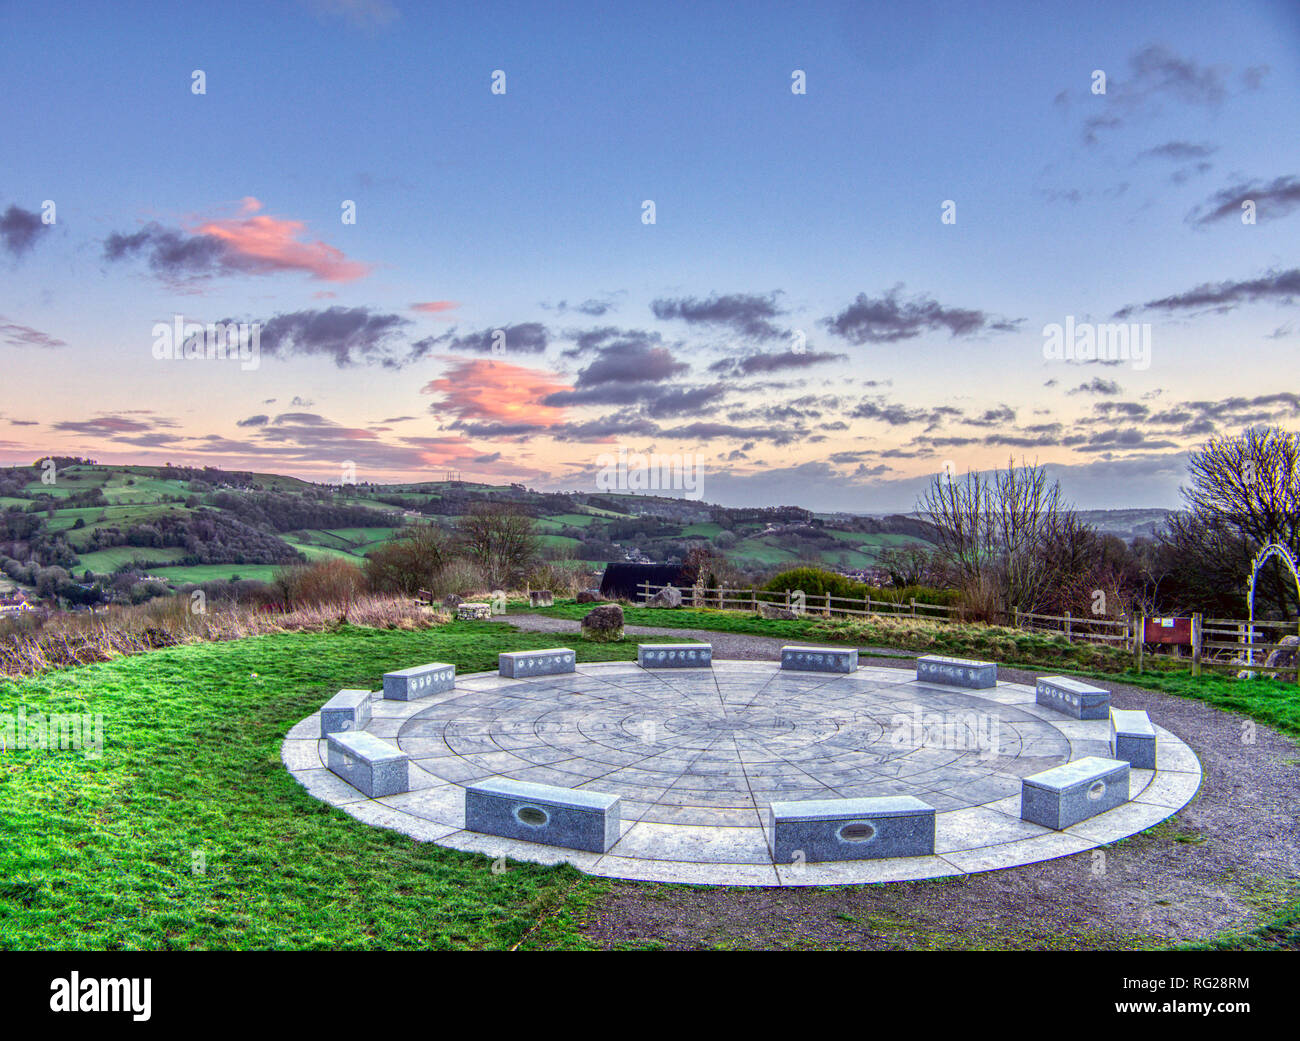 Wirksworth, Derbyshire, UK. 27th Jan, 2019. UK Weather: Skys clear as the sun sets over the StarDisc at Wirksworth before temperatures are due to drop. Wirksworth, Derbyshire Dales. Credit: Doug Blane/Alamy Live News Stock Photo